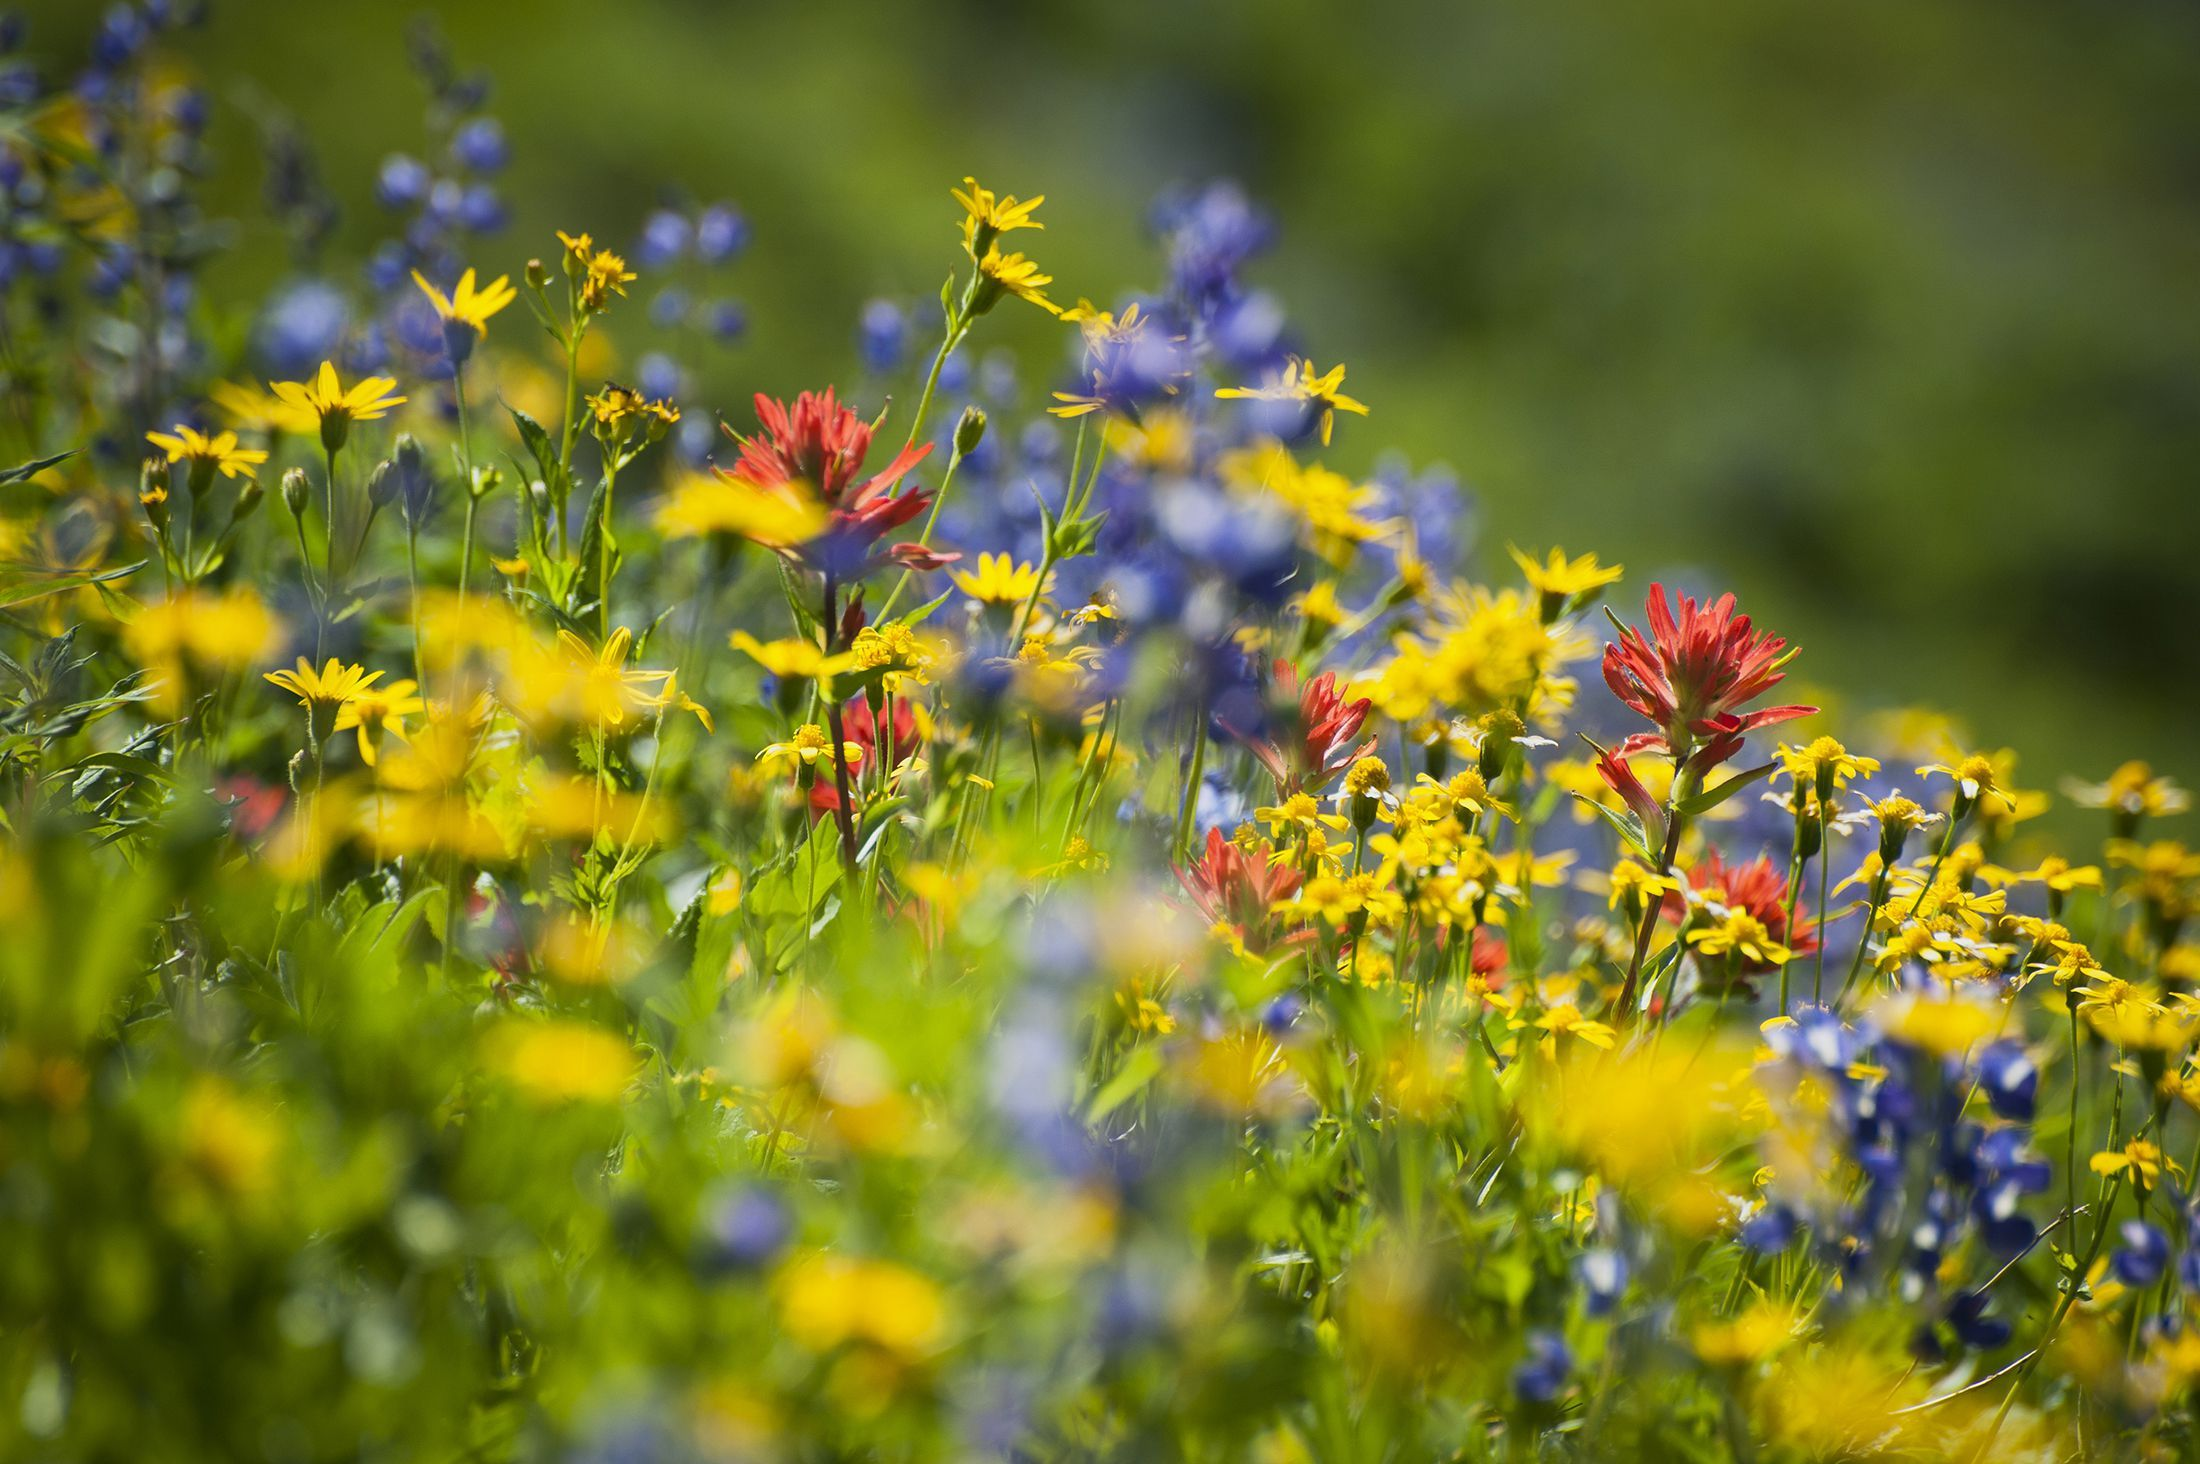 10 laws of picking wild flowers which, if broken, could land you a £5,000 fine